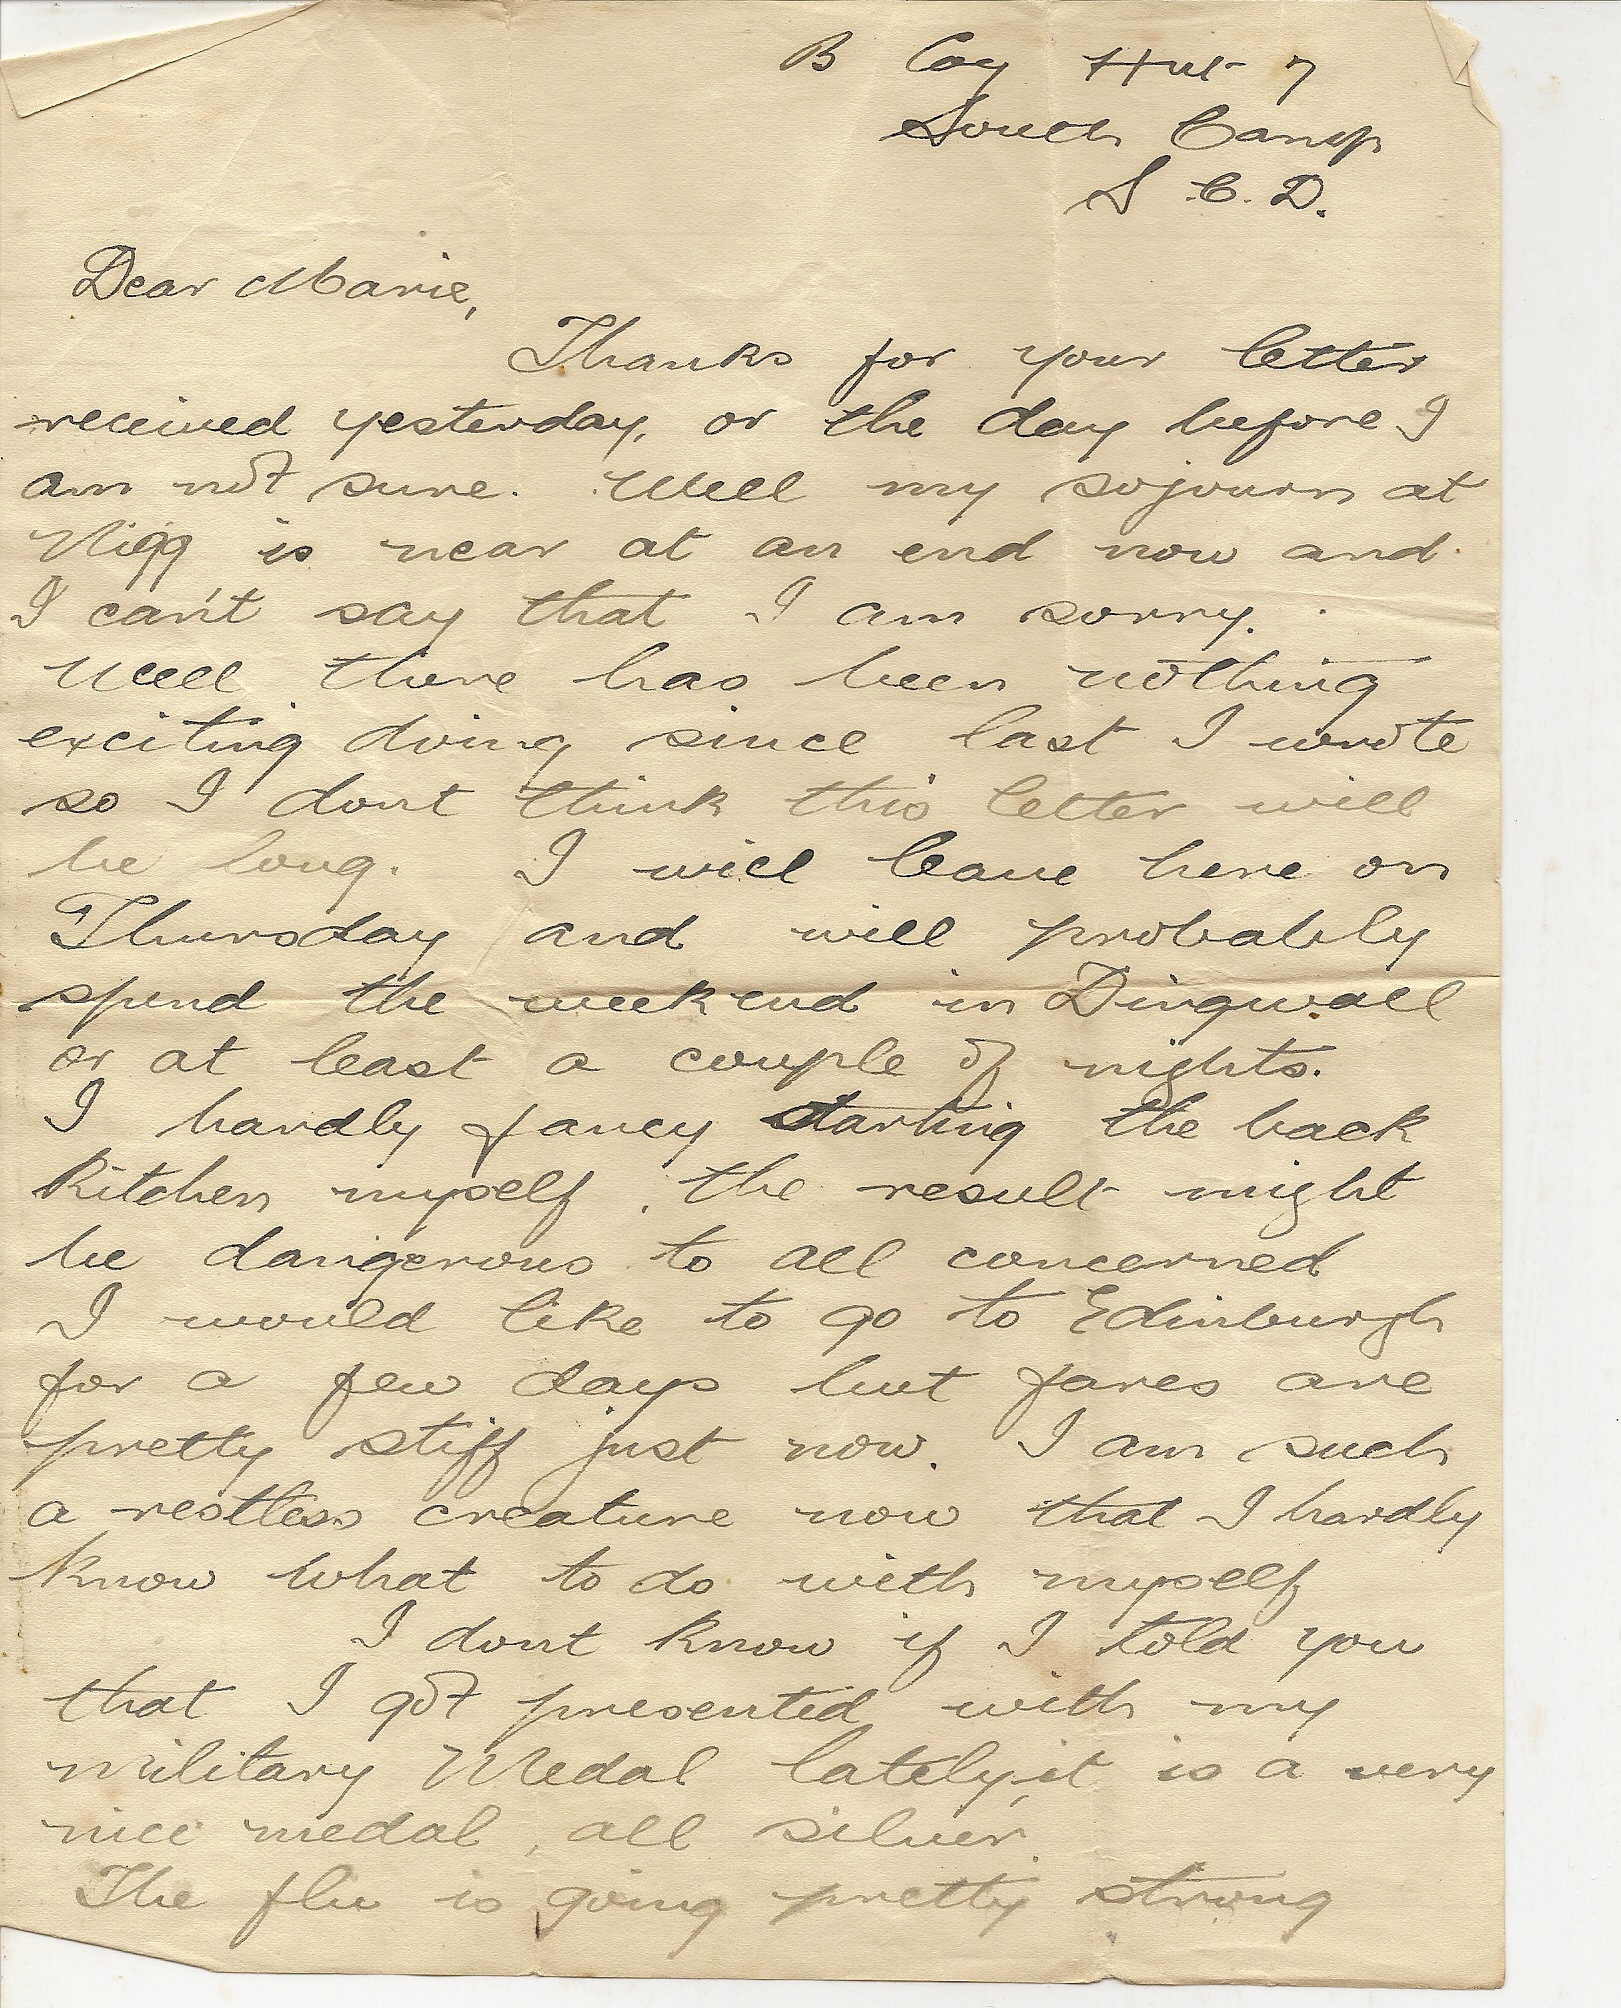 image of Letter from B Coy Hut 7 page 1